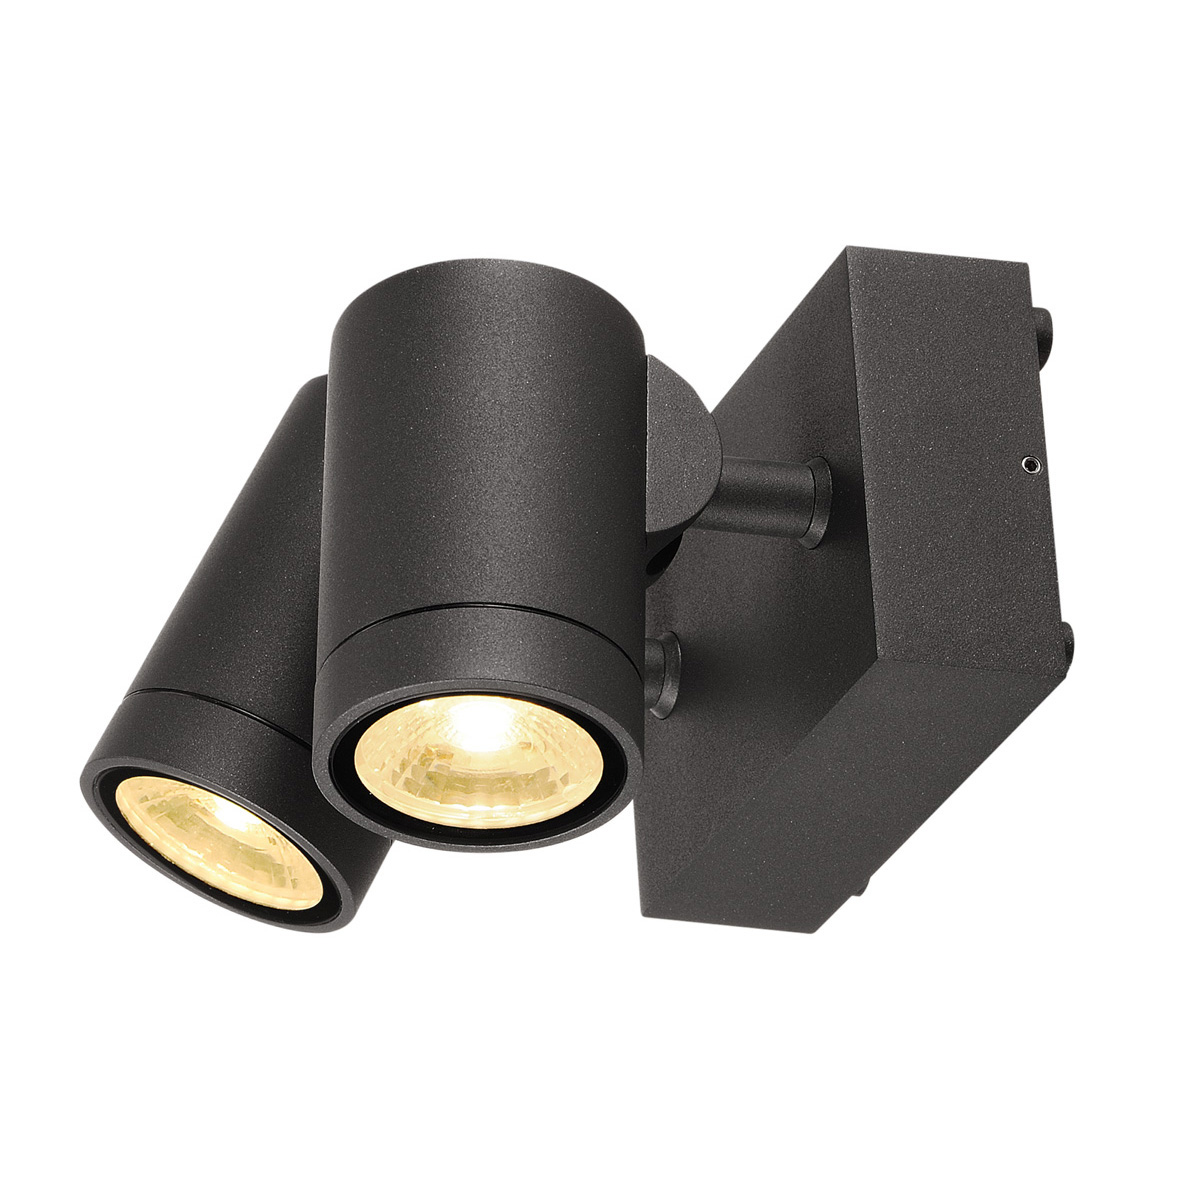 slv helia wandleuchte led 2x8w anthrazit 233255 stm. Black Bedroom Furniture Sets. Home Design Ideas